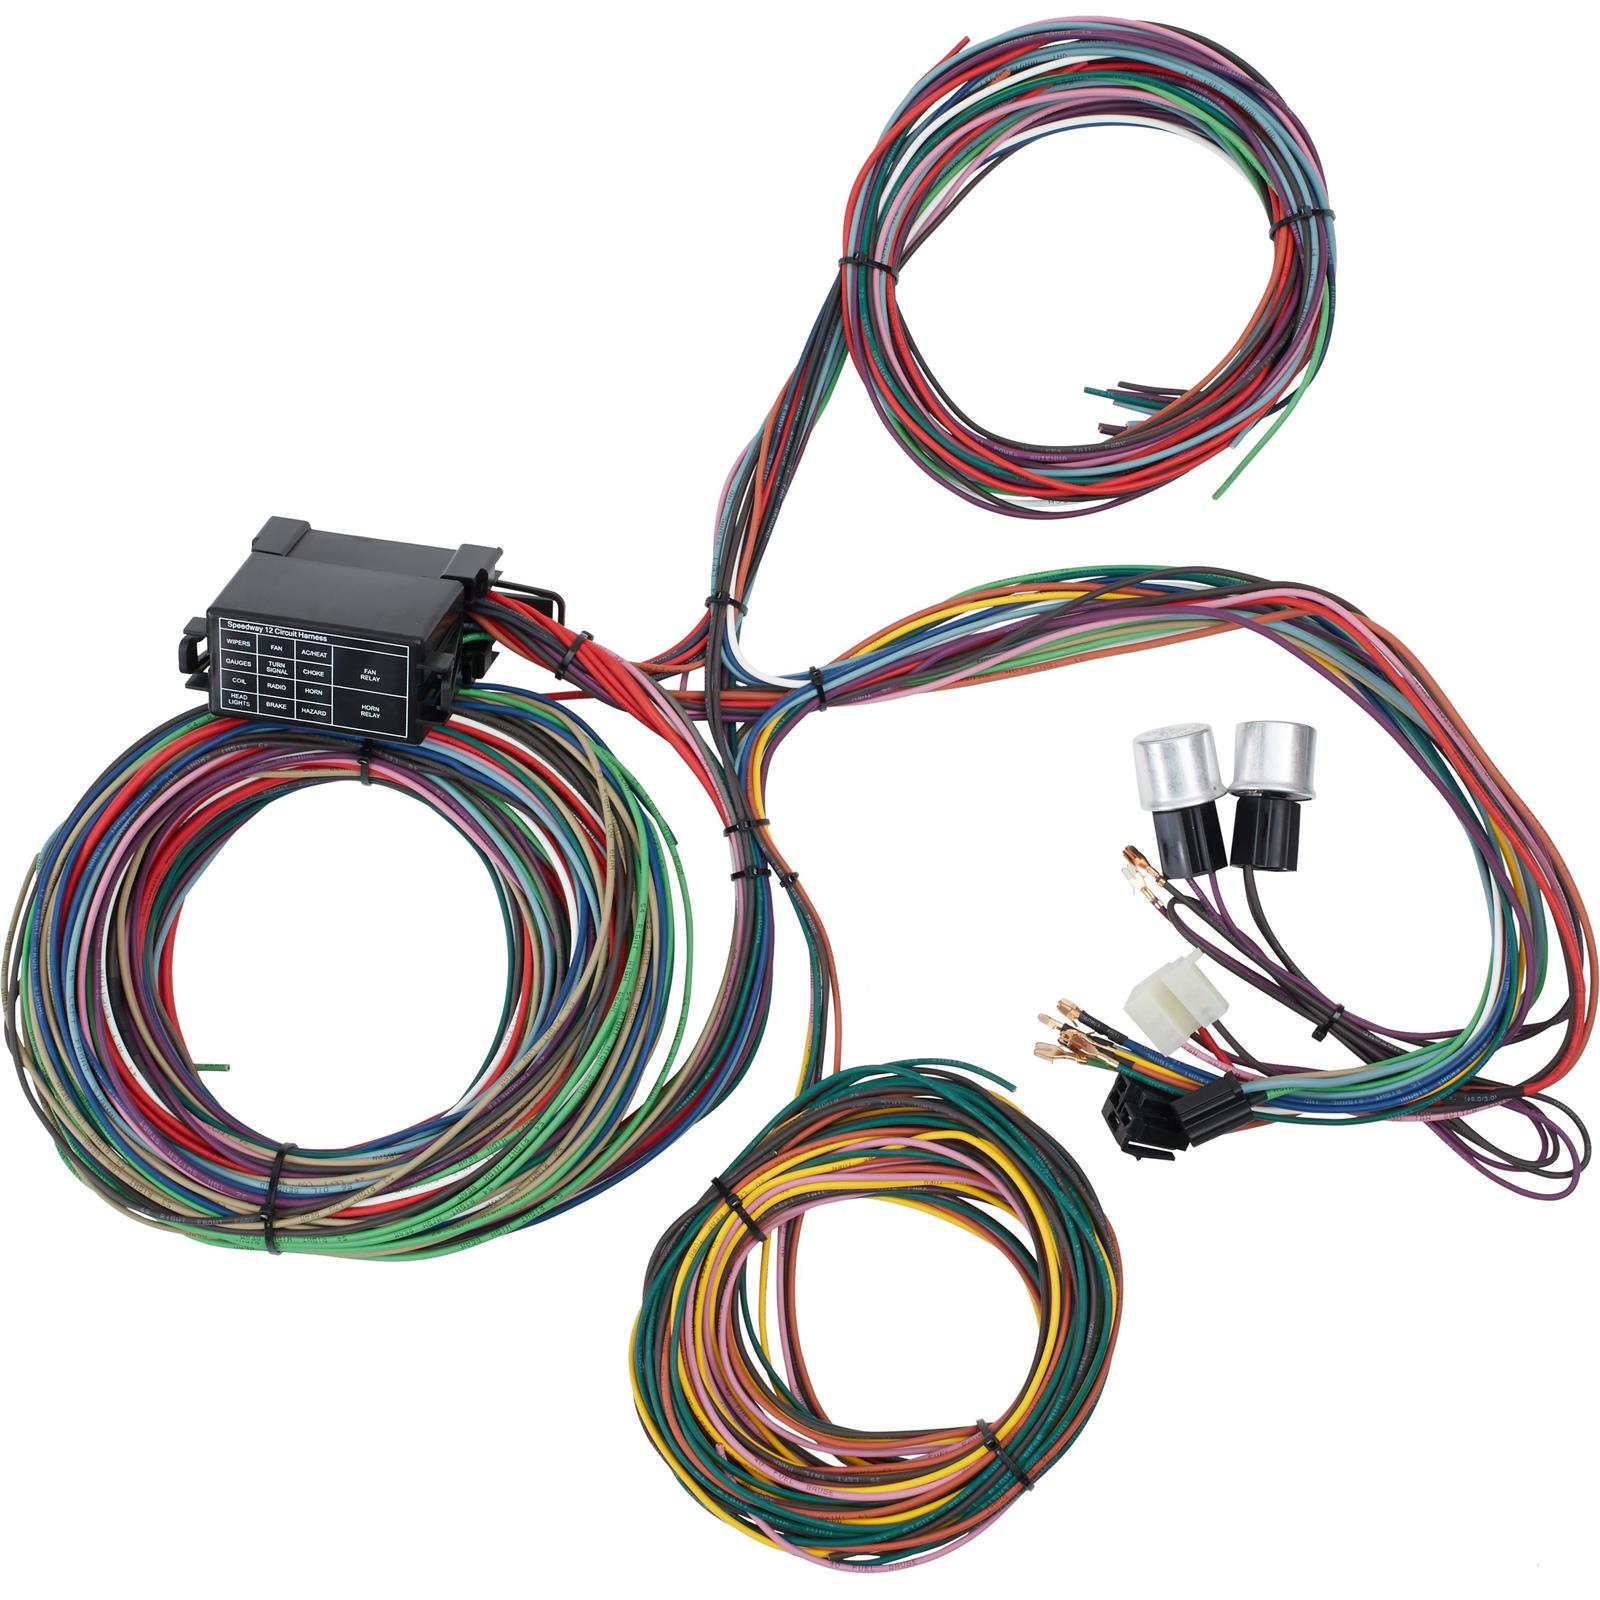 electrical wire harness wiring diagrams schematicspeedway motors universal 12 circuit mini fuse wiring harness oil burner wire harness 91064017_l1600_88753490 ec6b 4b3a